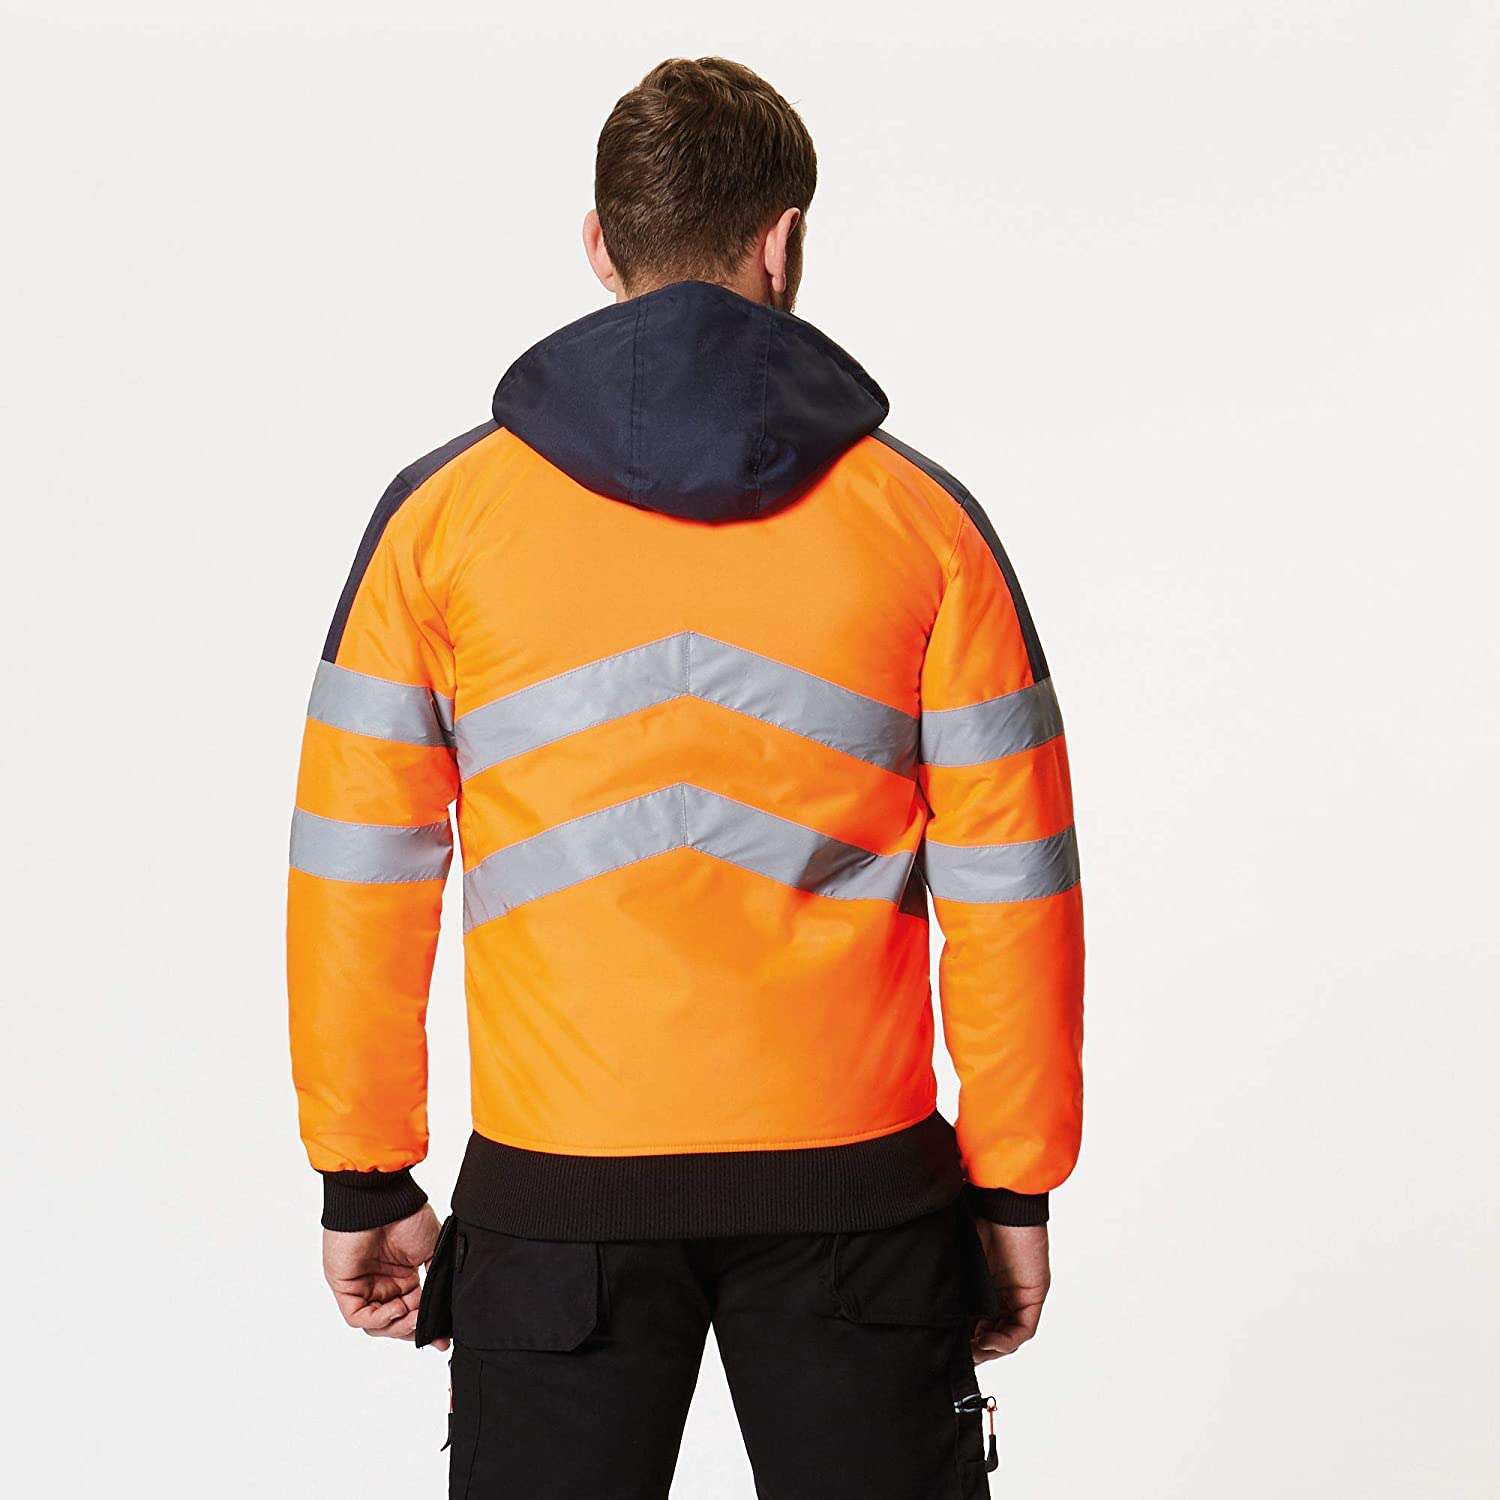 Orange//Navy S Regatta TRA314 5LV50 Professional Hi-Vis Pro Waterproof and Breathable Insulated Bomber Jacket